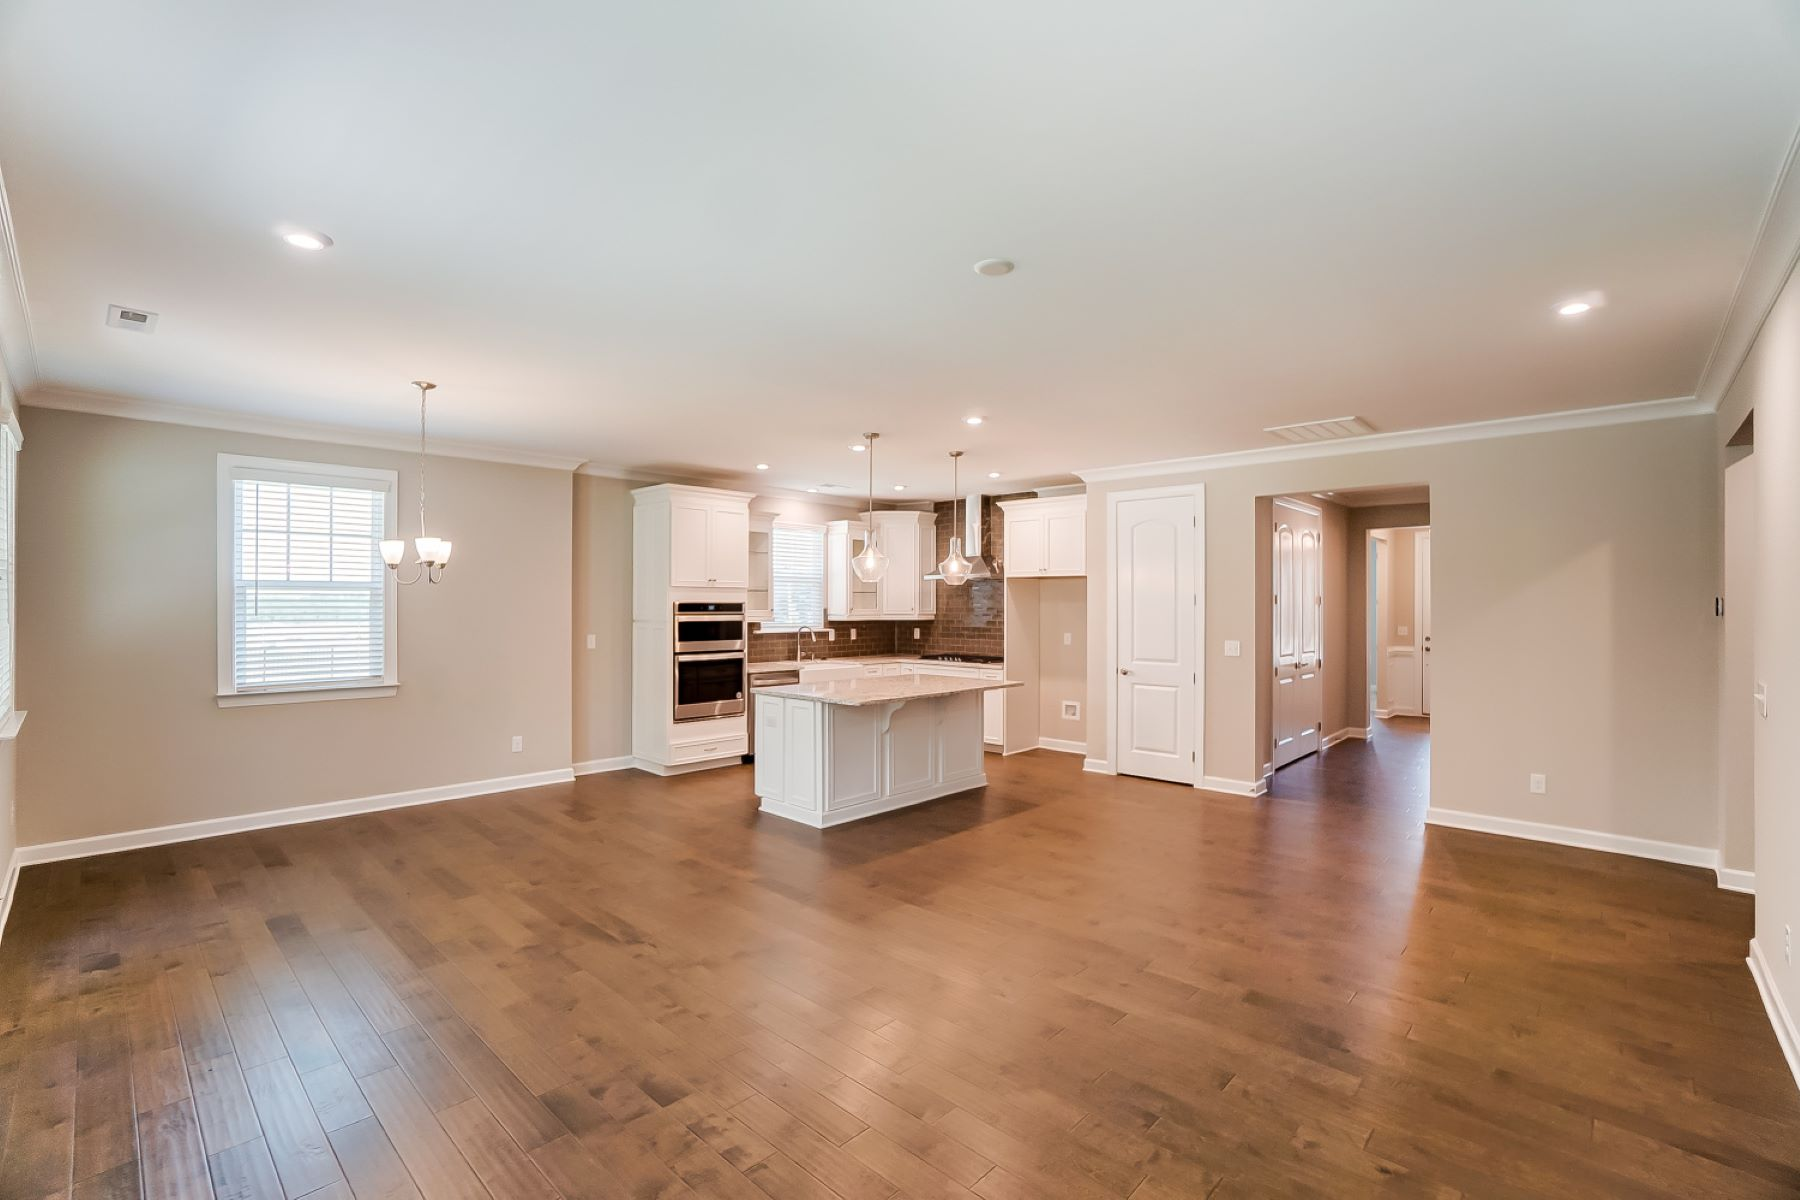 Bexley Plan Interior Others at Sonata at Mint Hill in Mint Hill North Carolina by Mattamy Homes